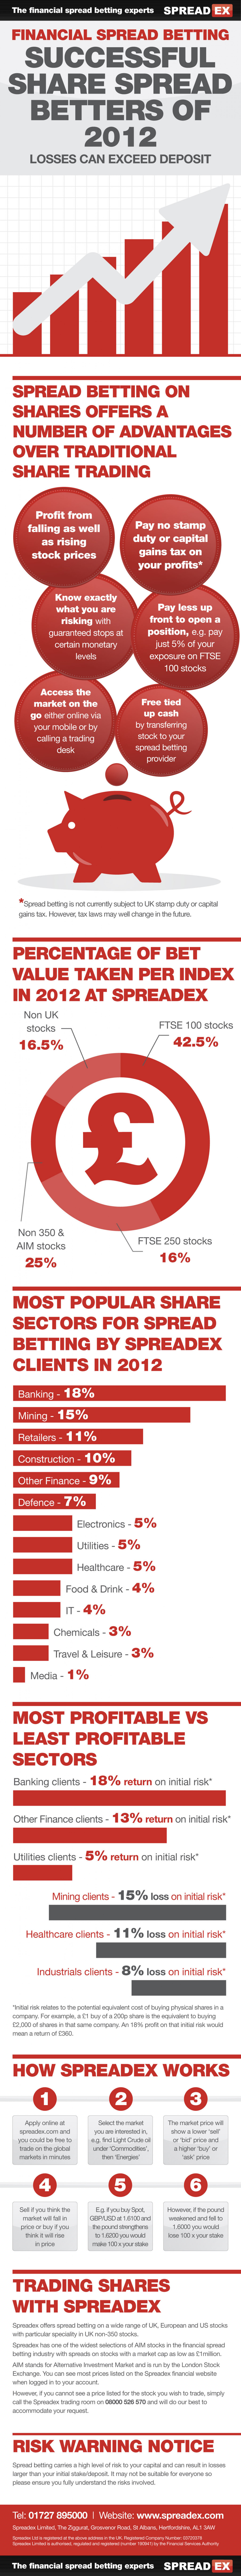 Financial Spread Trading – Successful Share Spread Betters of 2012  Infographic